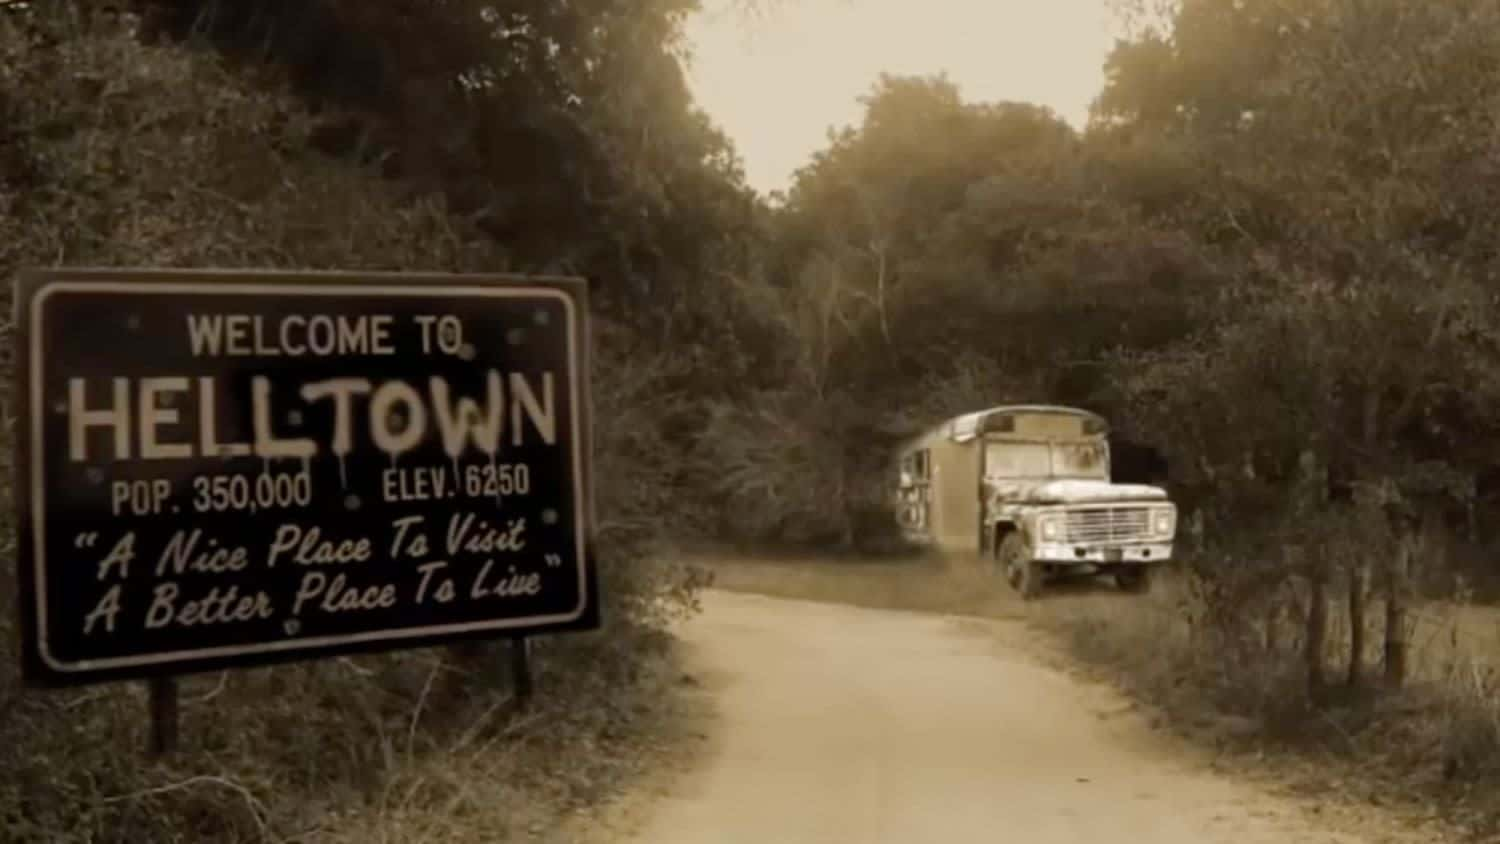 Ghost Towns That Will Scare Your Pants Off